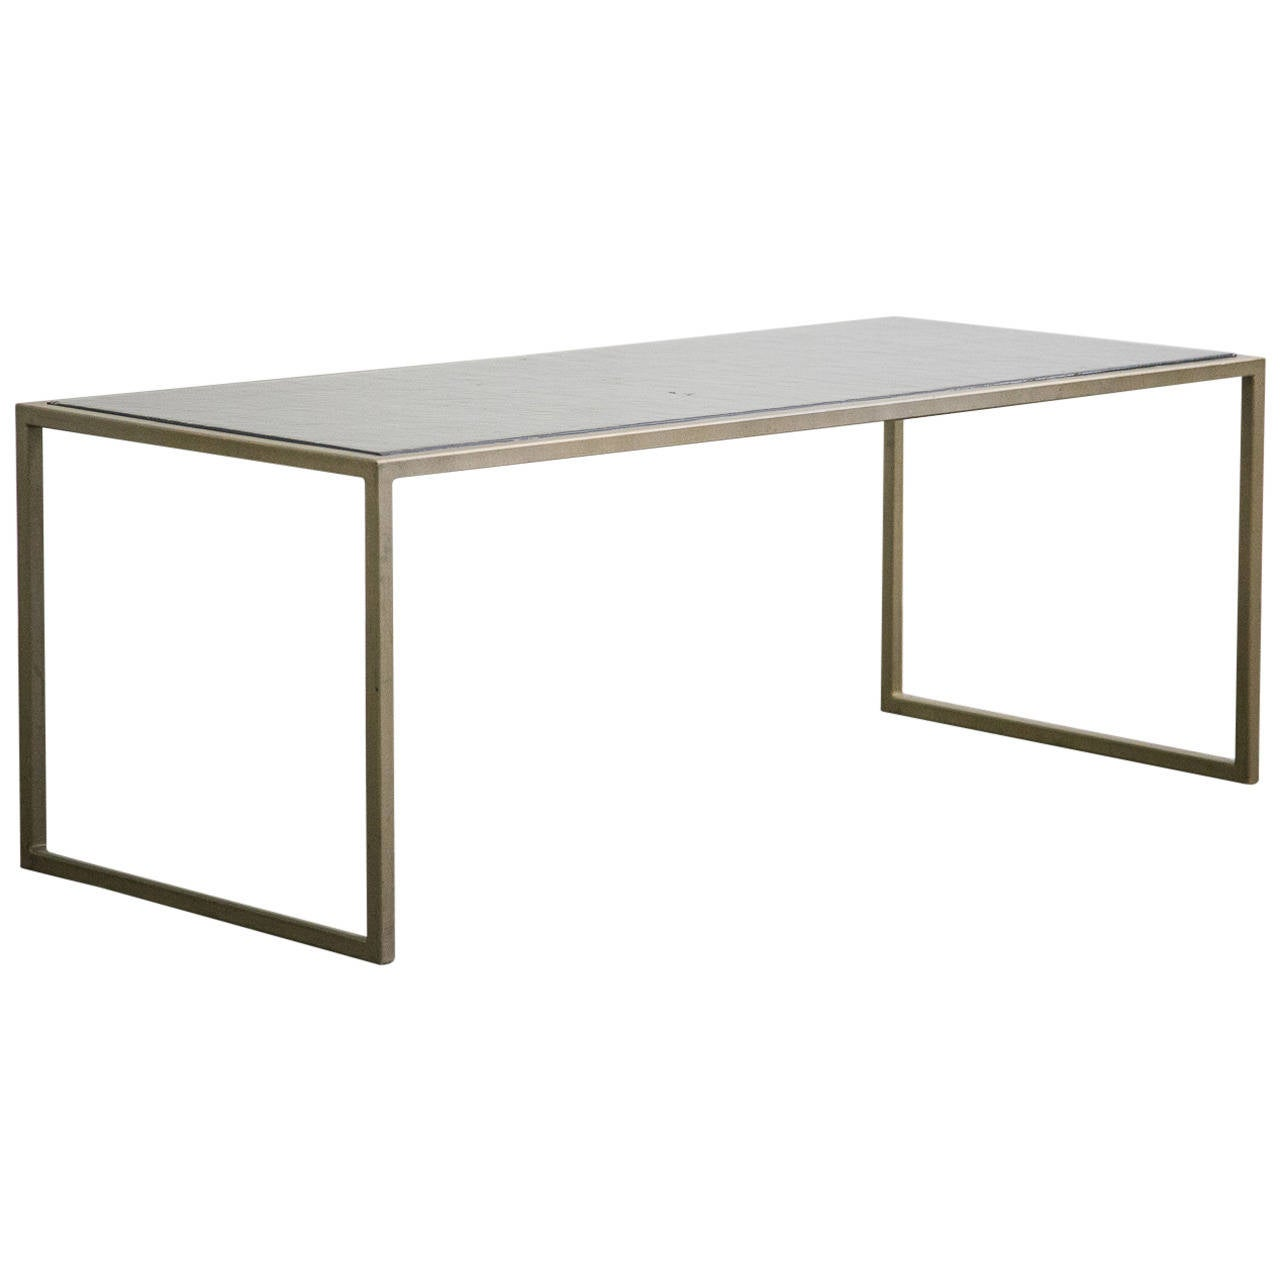 Philippe Starck Tables Of Philippe Starck Designed Coffee Table Paris Circa 1985 For Sale At 1stdibs